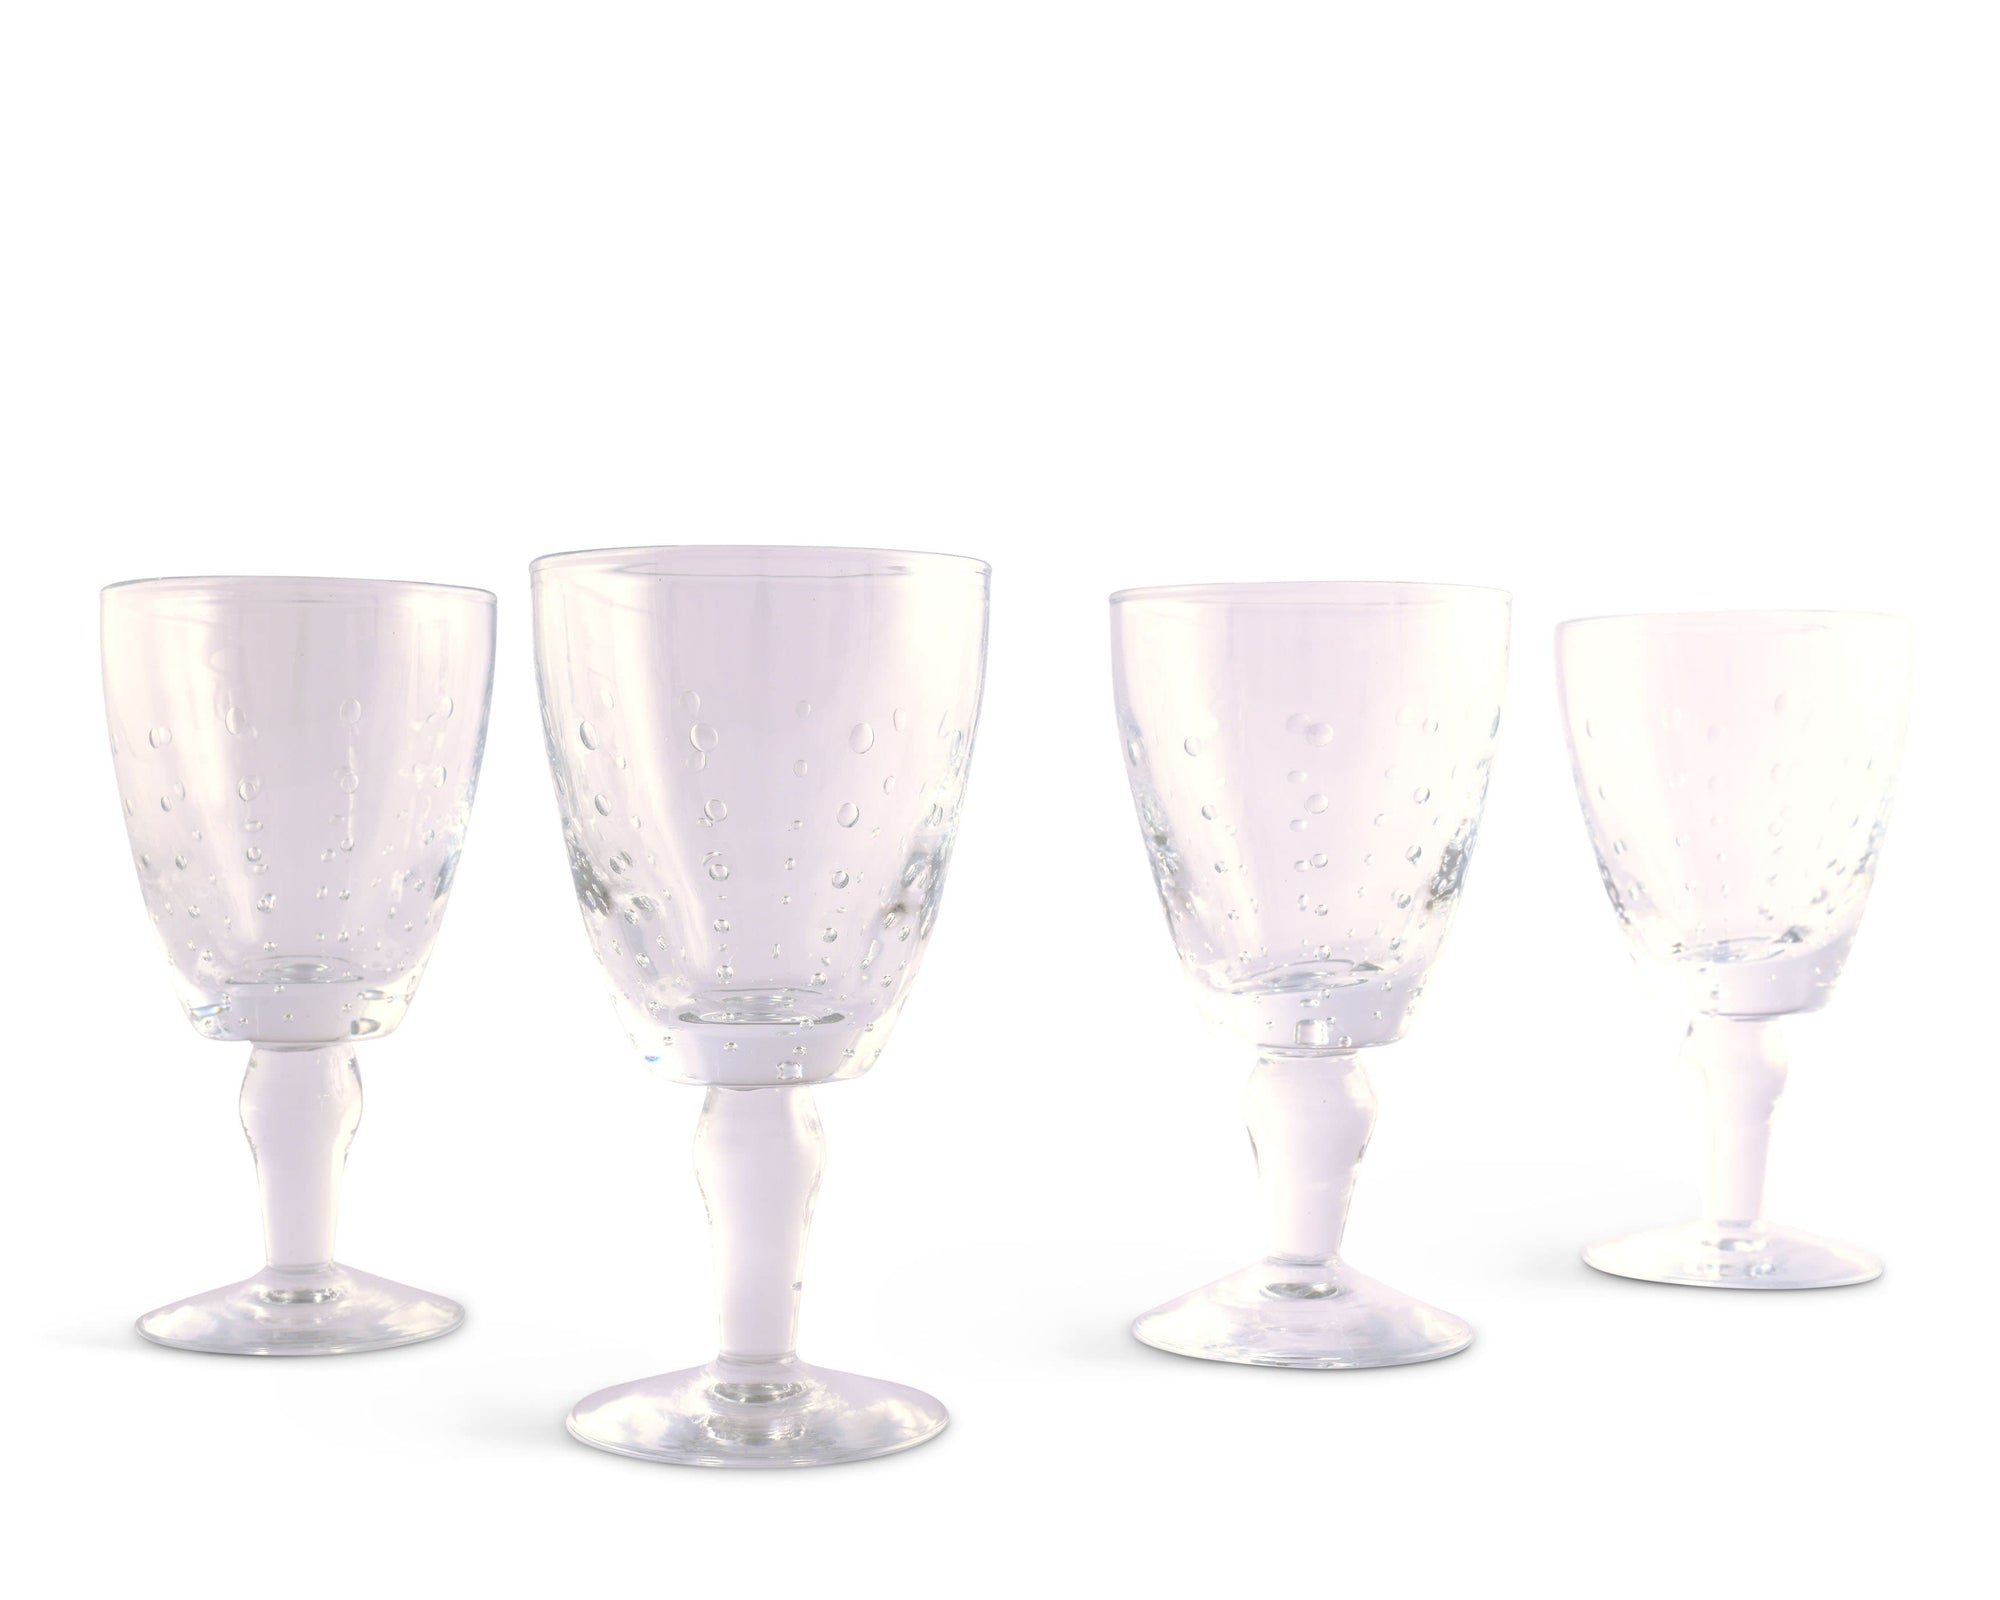 Vagabond House Hand Blown Glassware Wine Glass -  Clear Drops Set of 4